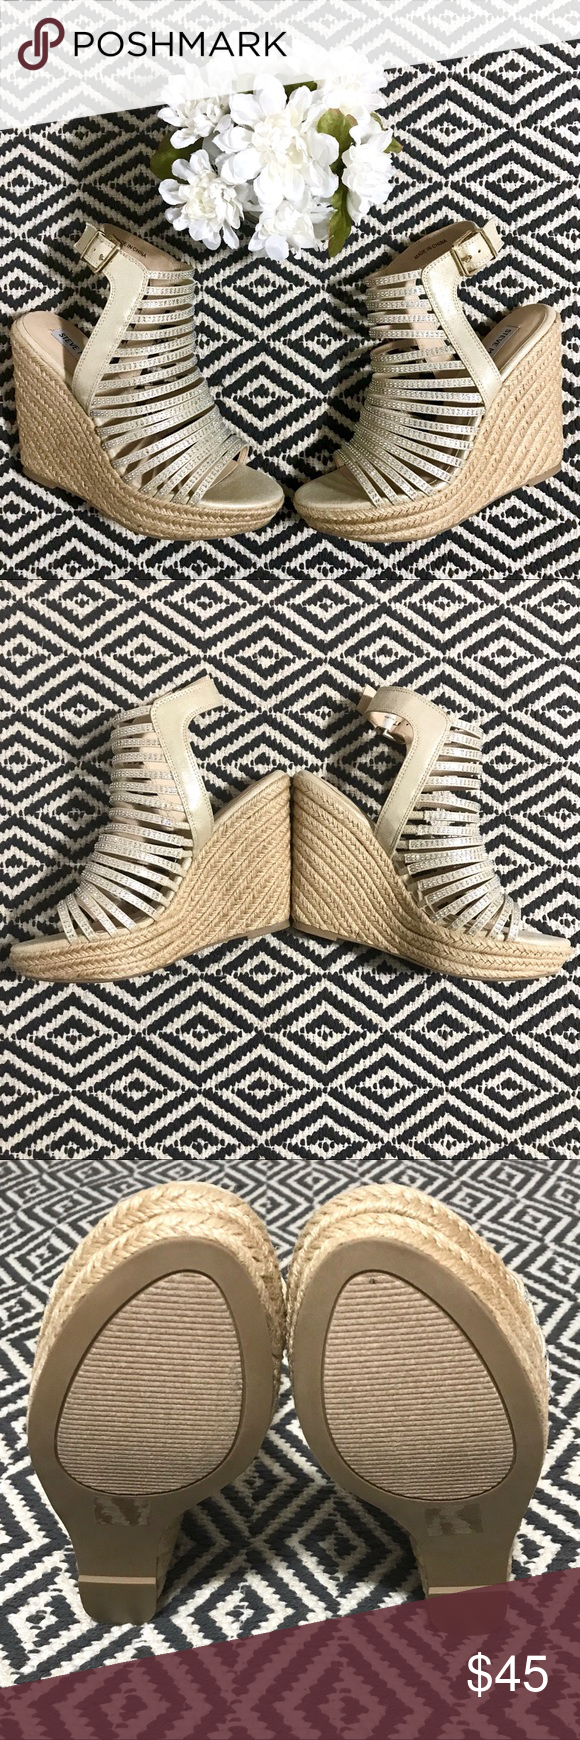 Steve Madden wedges. These beautiful and glamorous Steve Madden wedges are a must have for the summer! These espadrille wedges have straps with crystals that shine in the light and will definitely turn heads